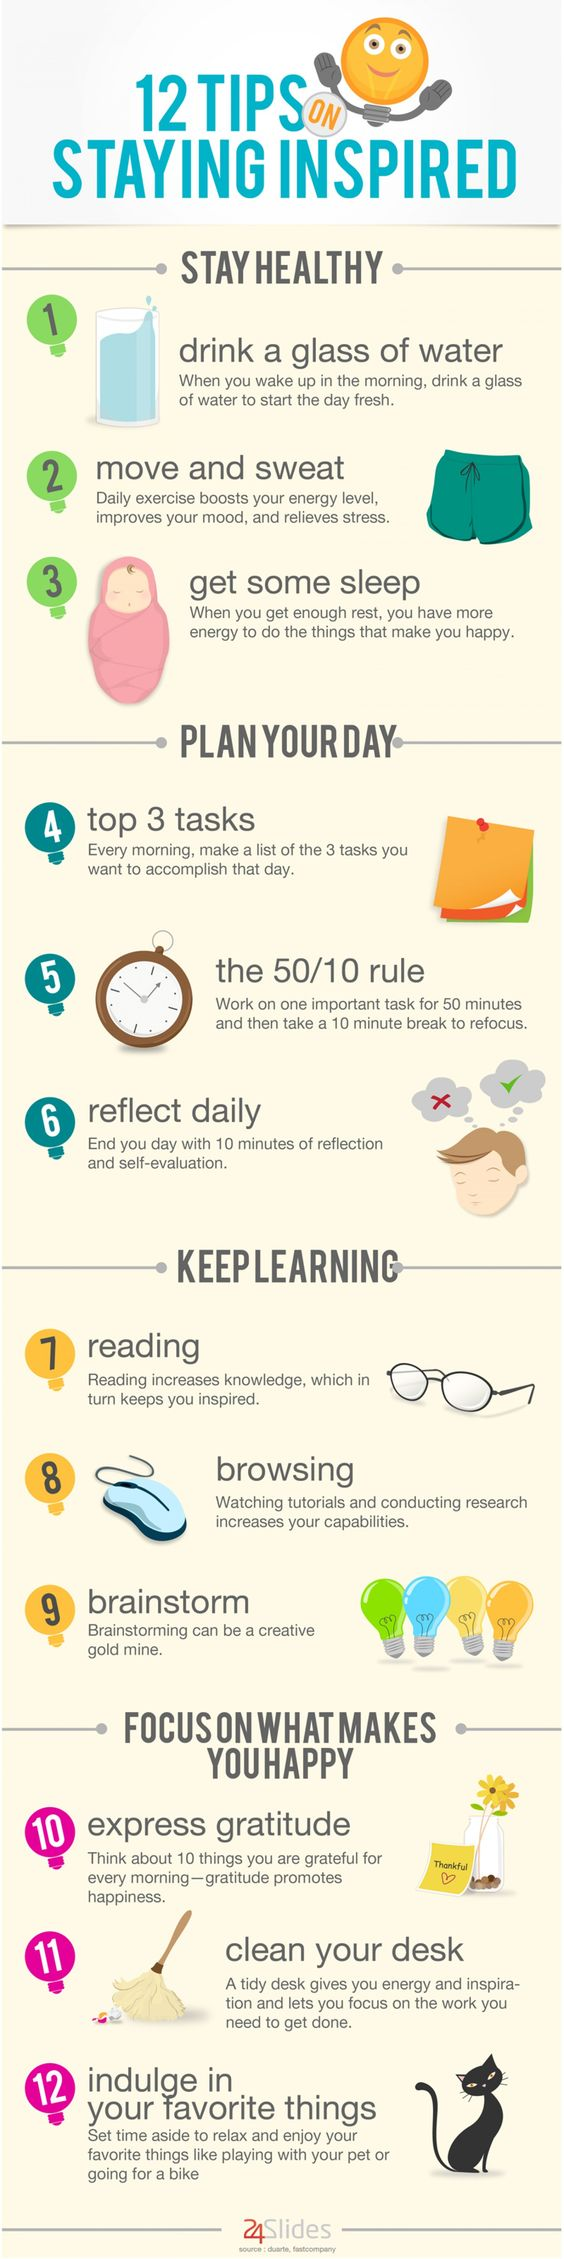 12 Tips On Staying Inspired - #infographic